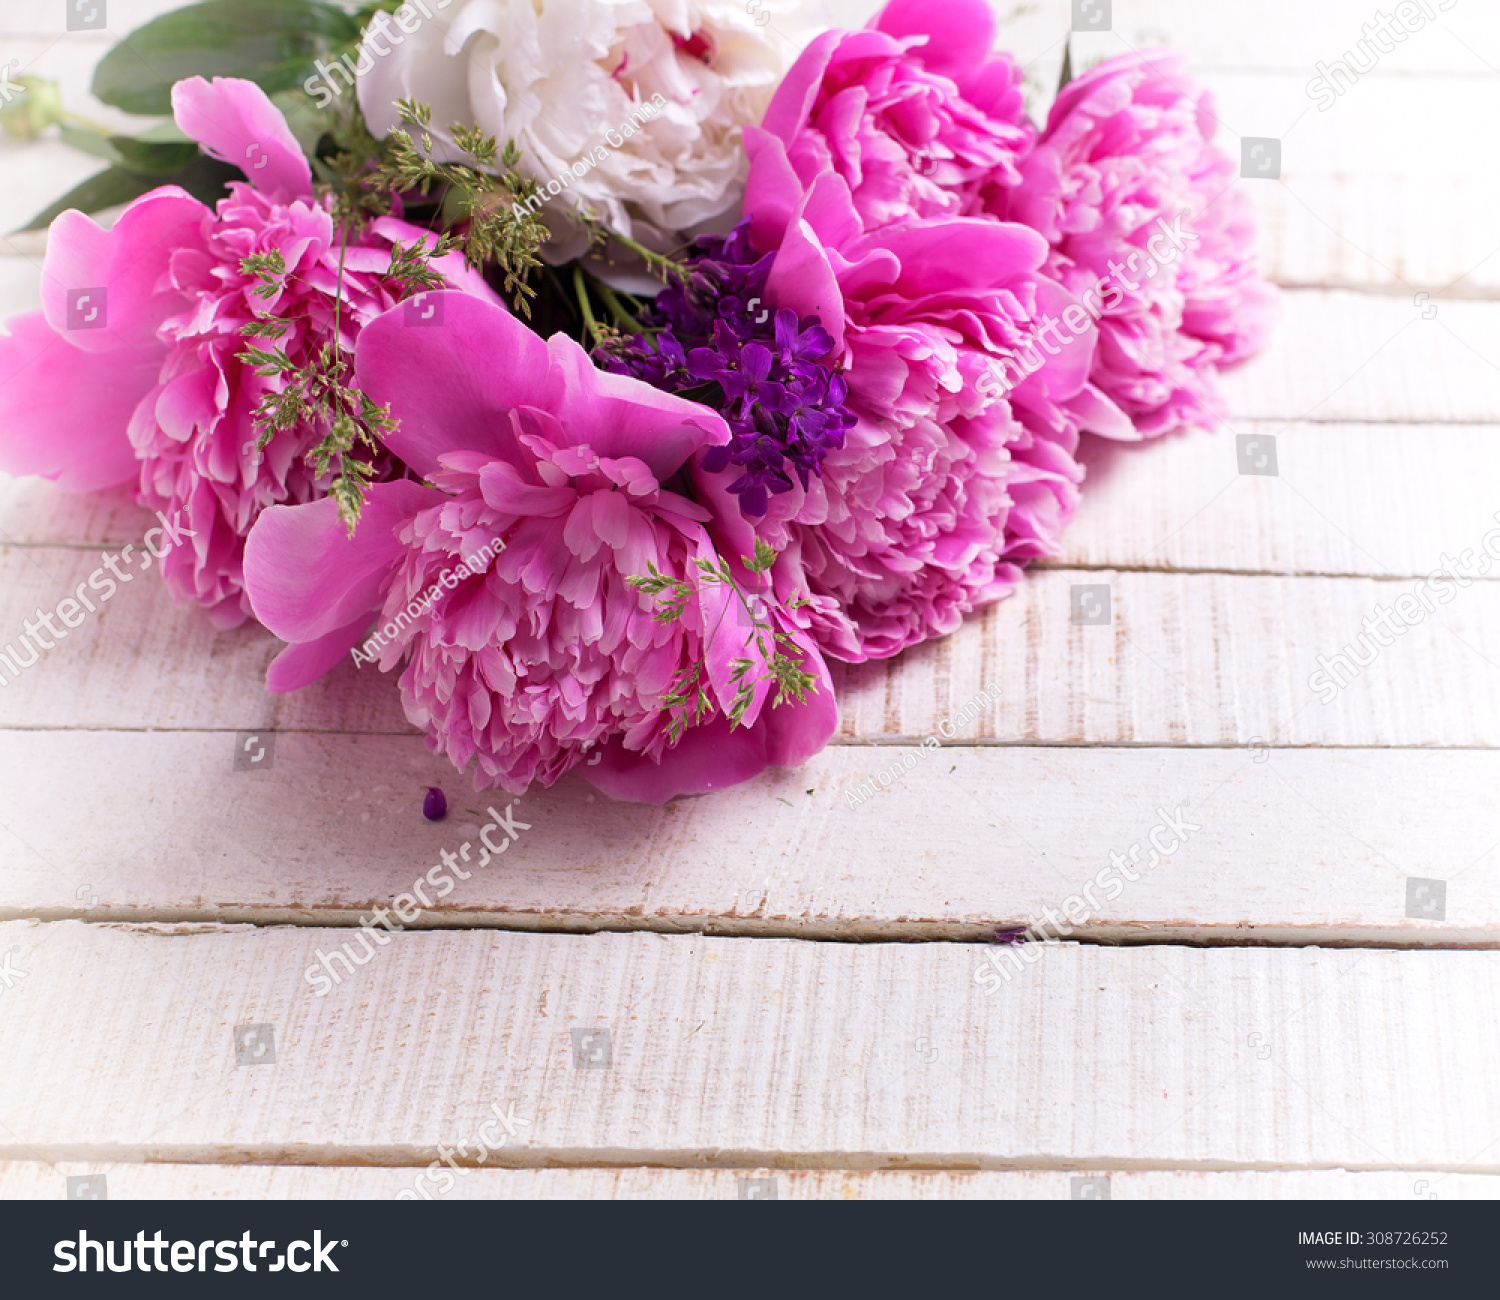 Fresh Pink And White Peonies Flowers On White Painted Wooden Planks